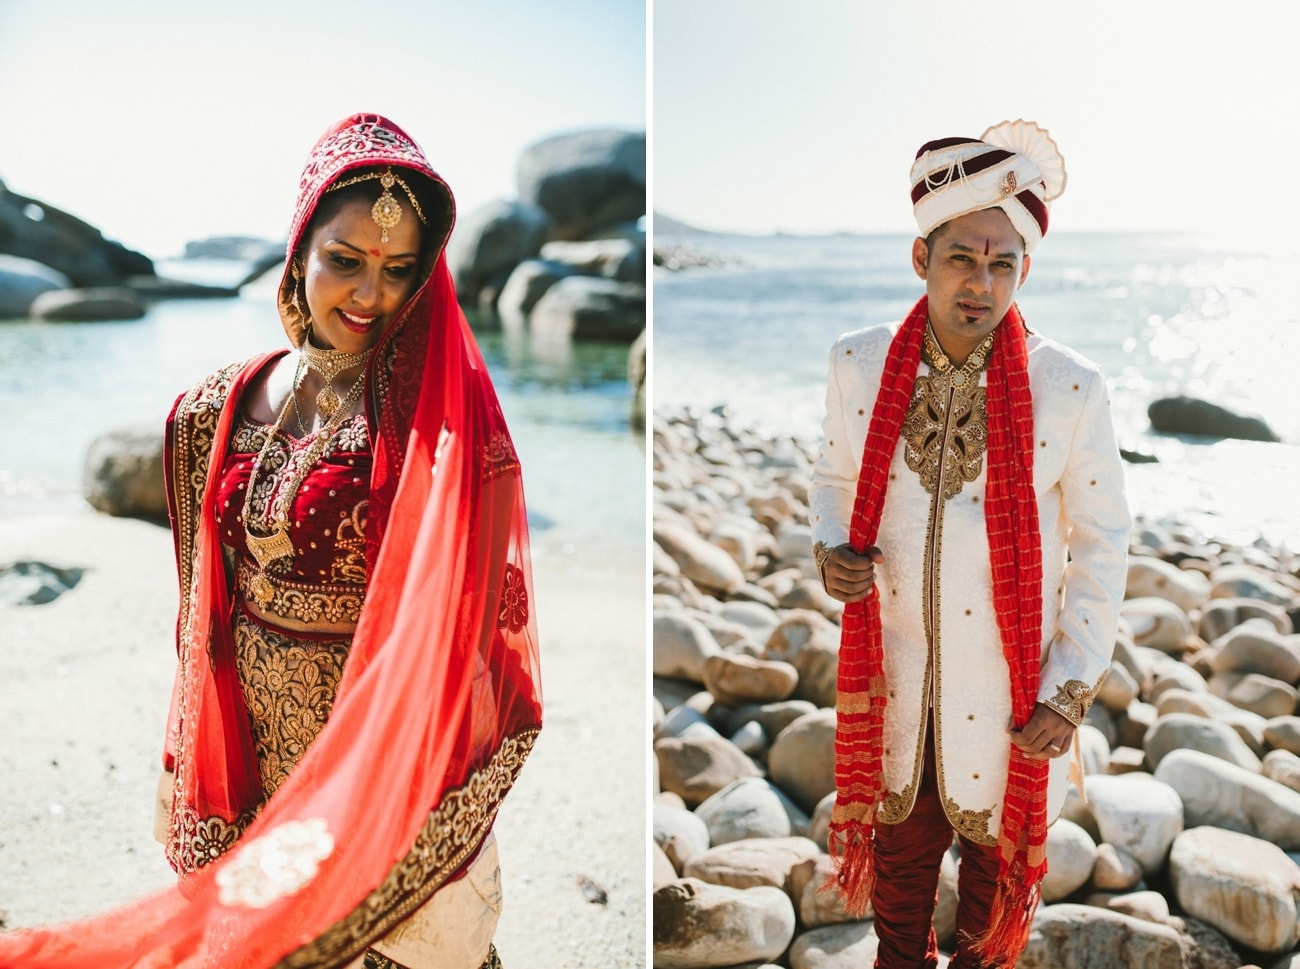 Traditional South Asian Bride and Groom Attire | Image: Claire Thomson